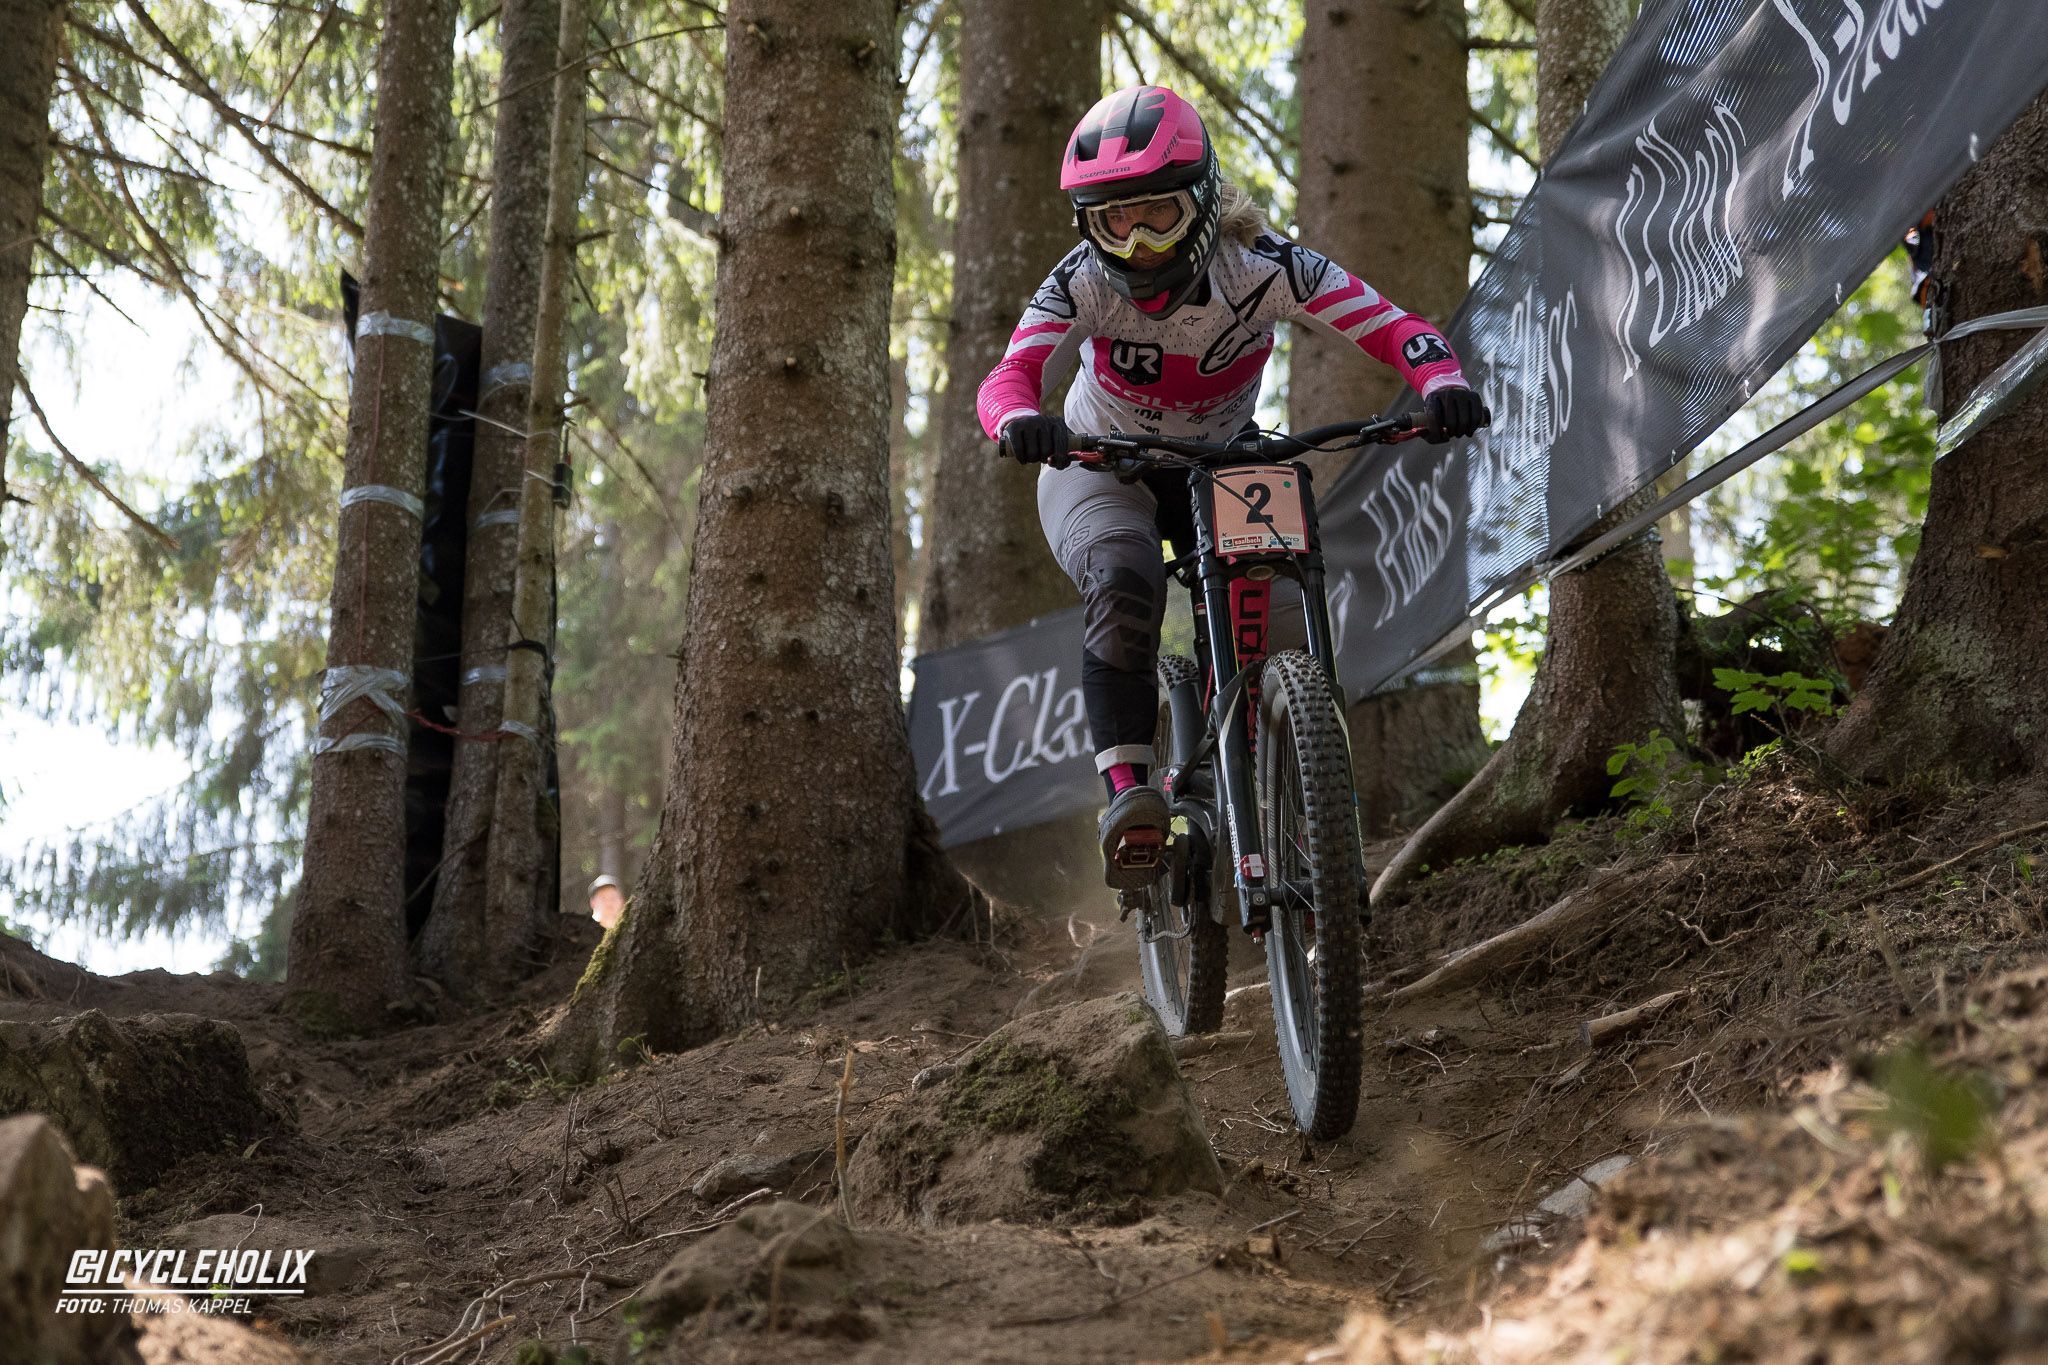 2019 Downhill Worldcup Leogang Finale Action 20